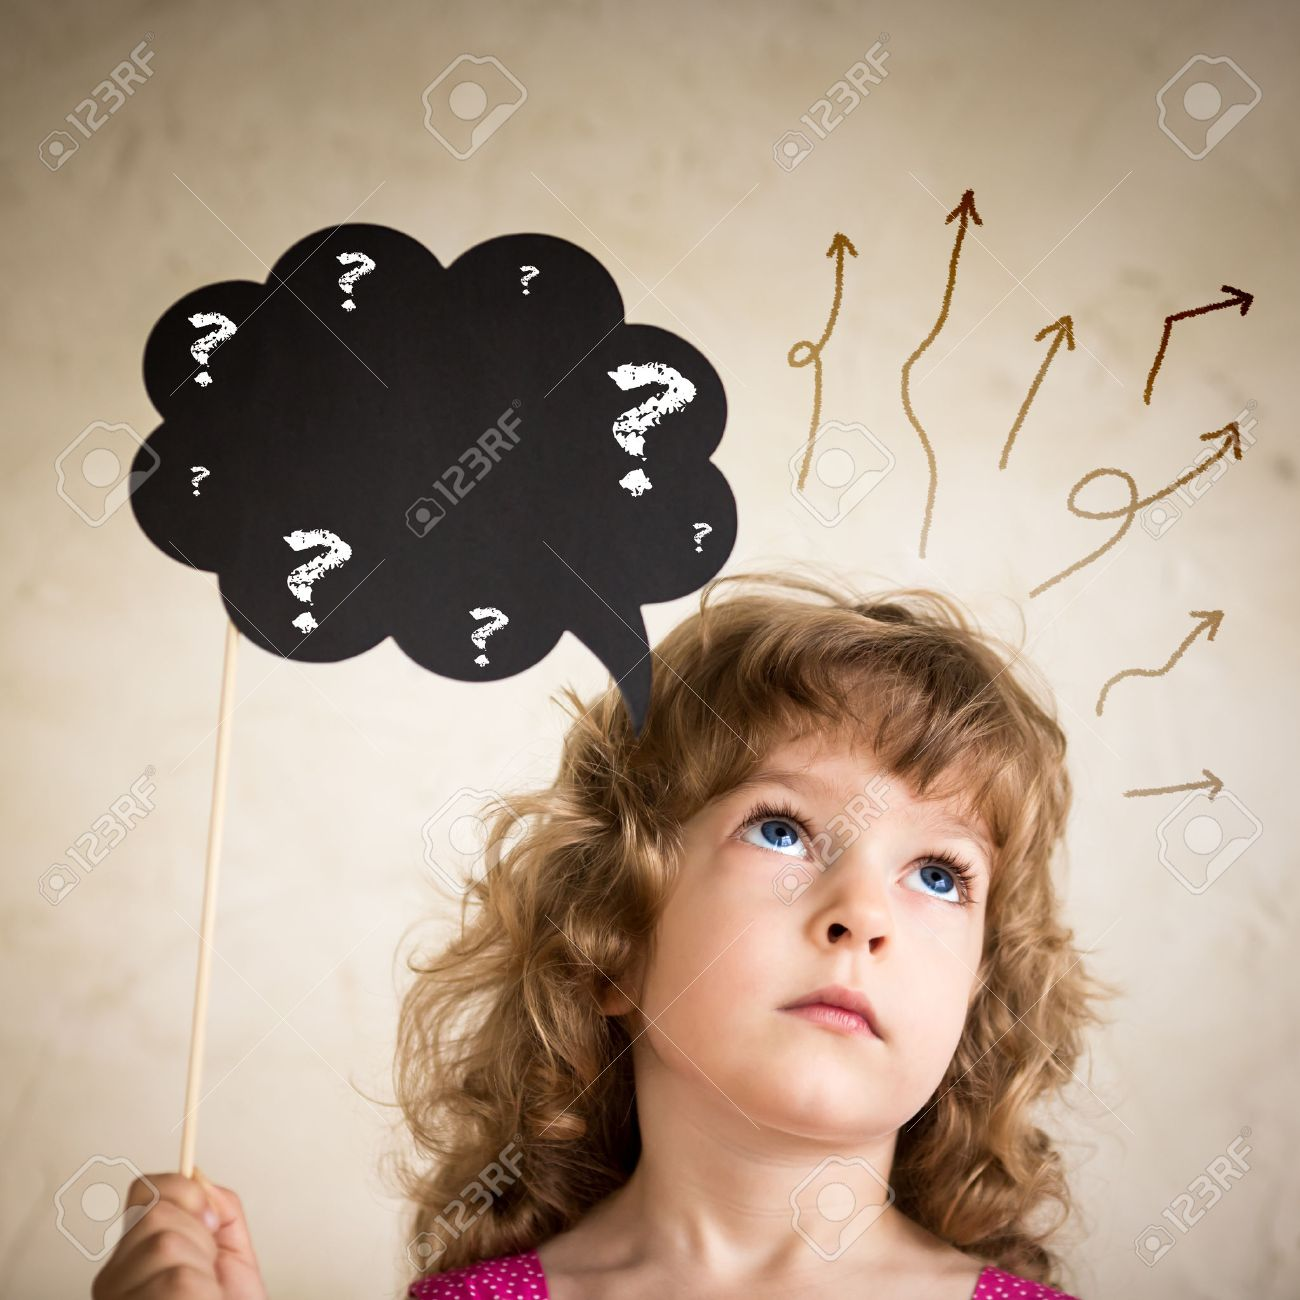 Confused child with paper cloud Stock Photo - 23100145